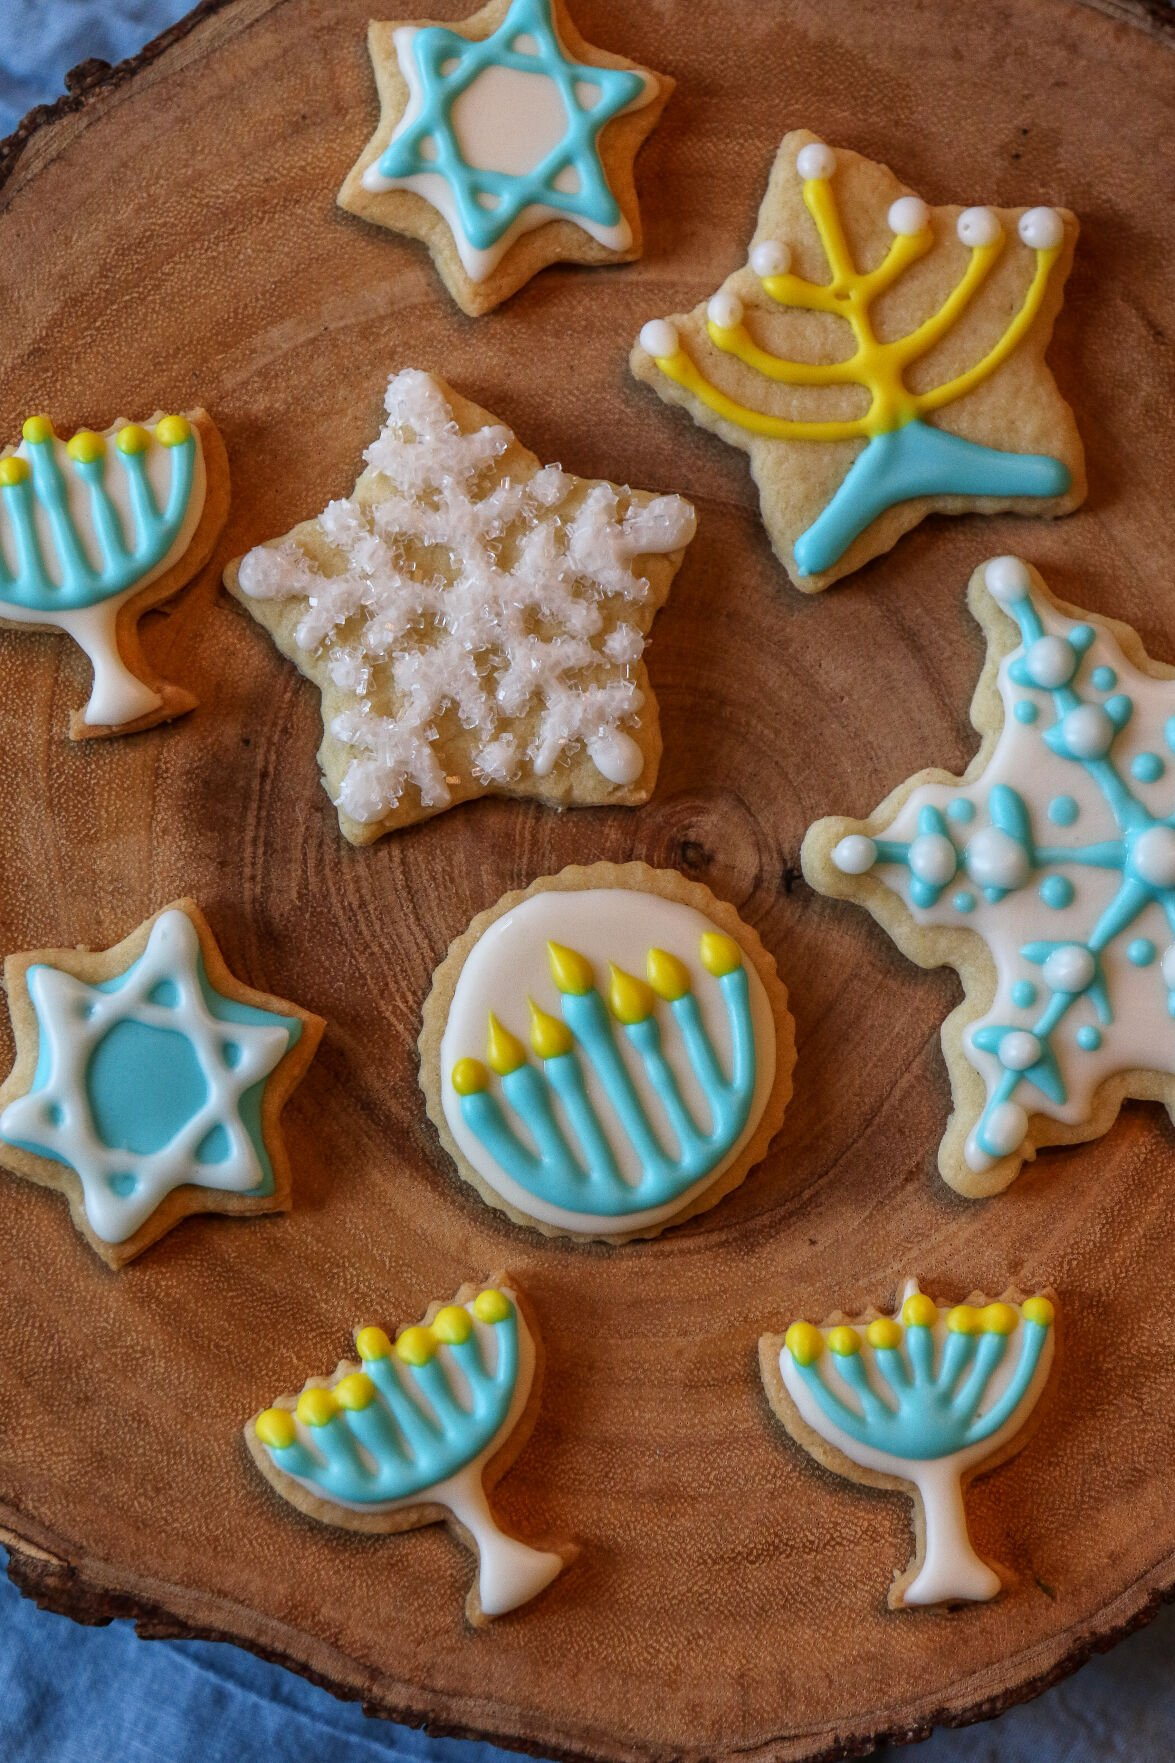 Sugar Dough To The Rescue The Only Cookie Recipe You Need For The Holidays Tulsa World Magazine Tulsaworld Com